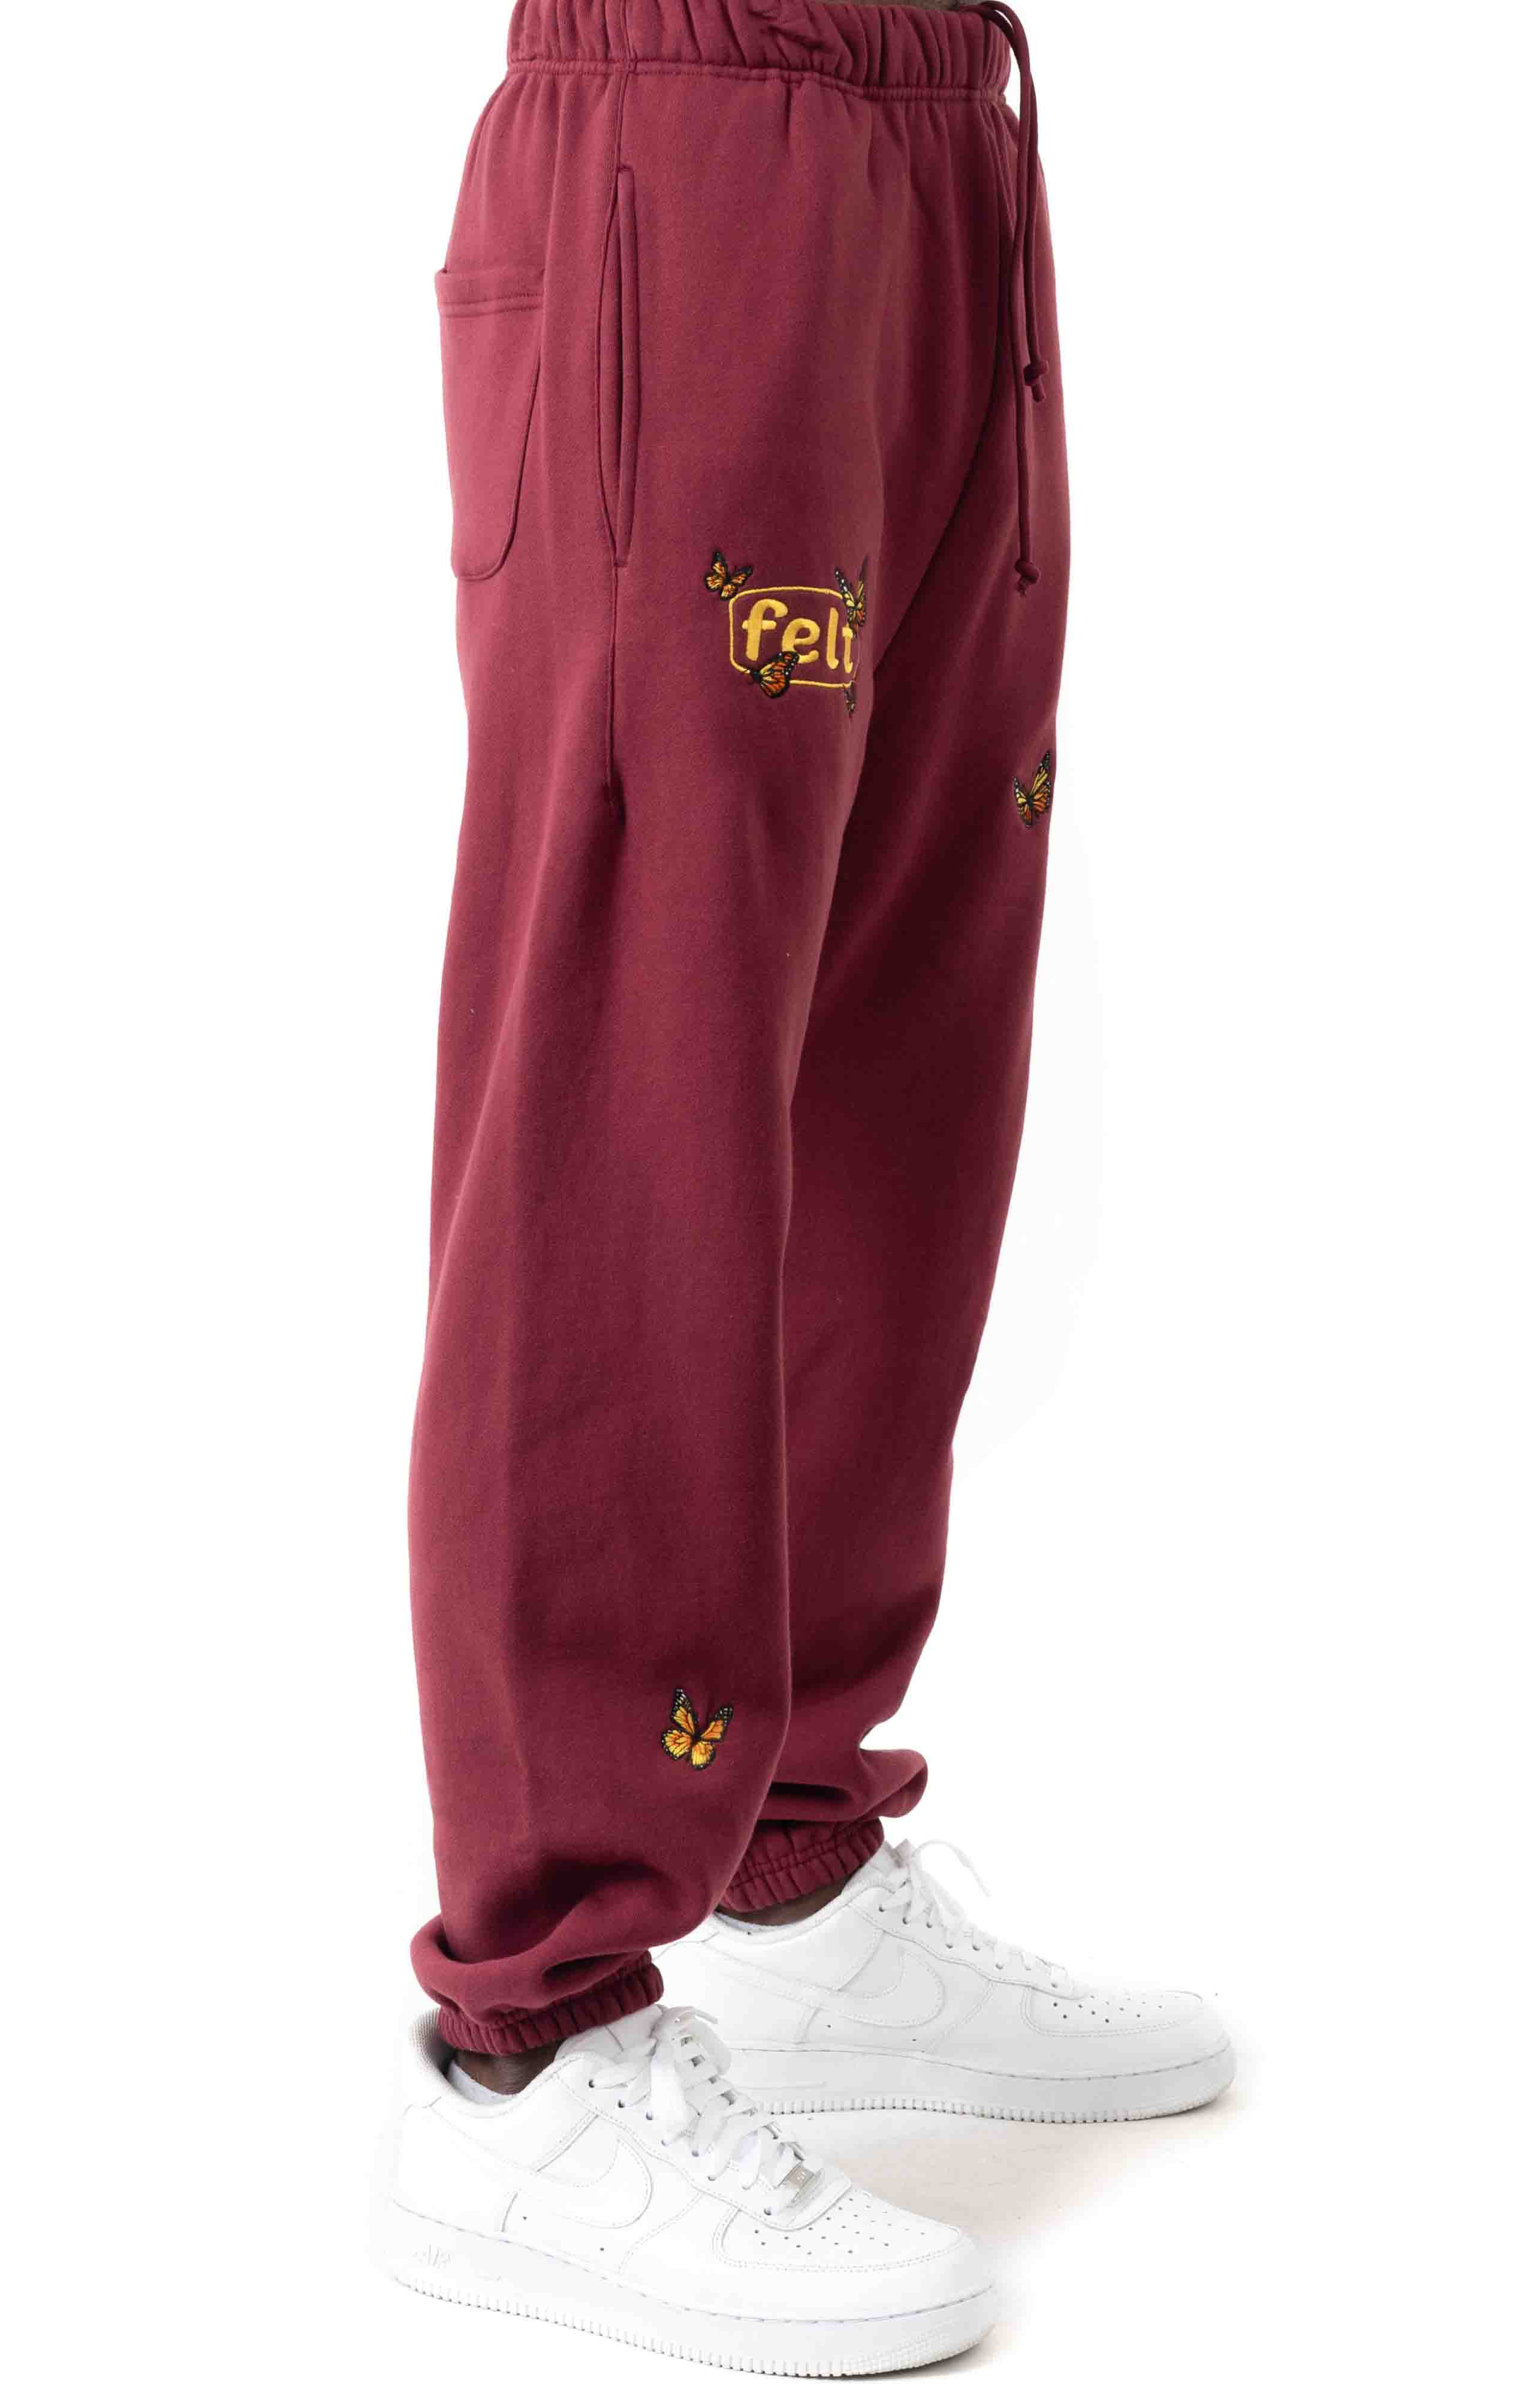 Butterfly Embroidered Sweatpants - Burgundy  2